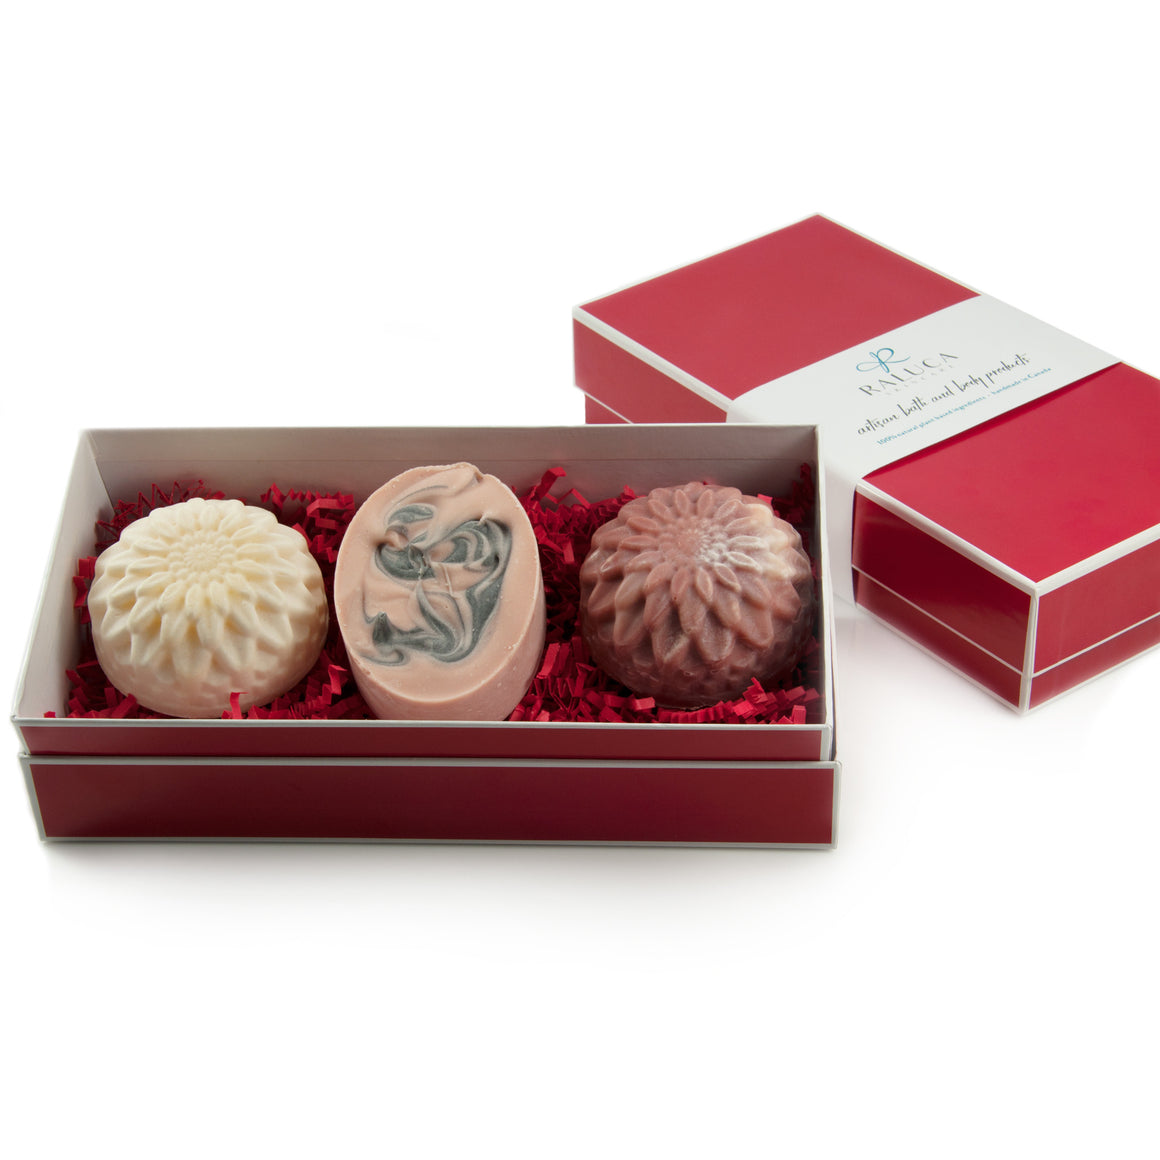 Raluca Skincare - Artisan soap set - pink and white flower shaped soaps